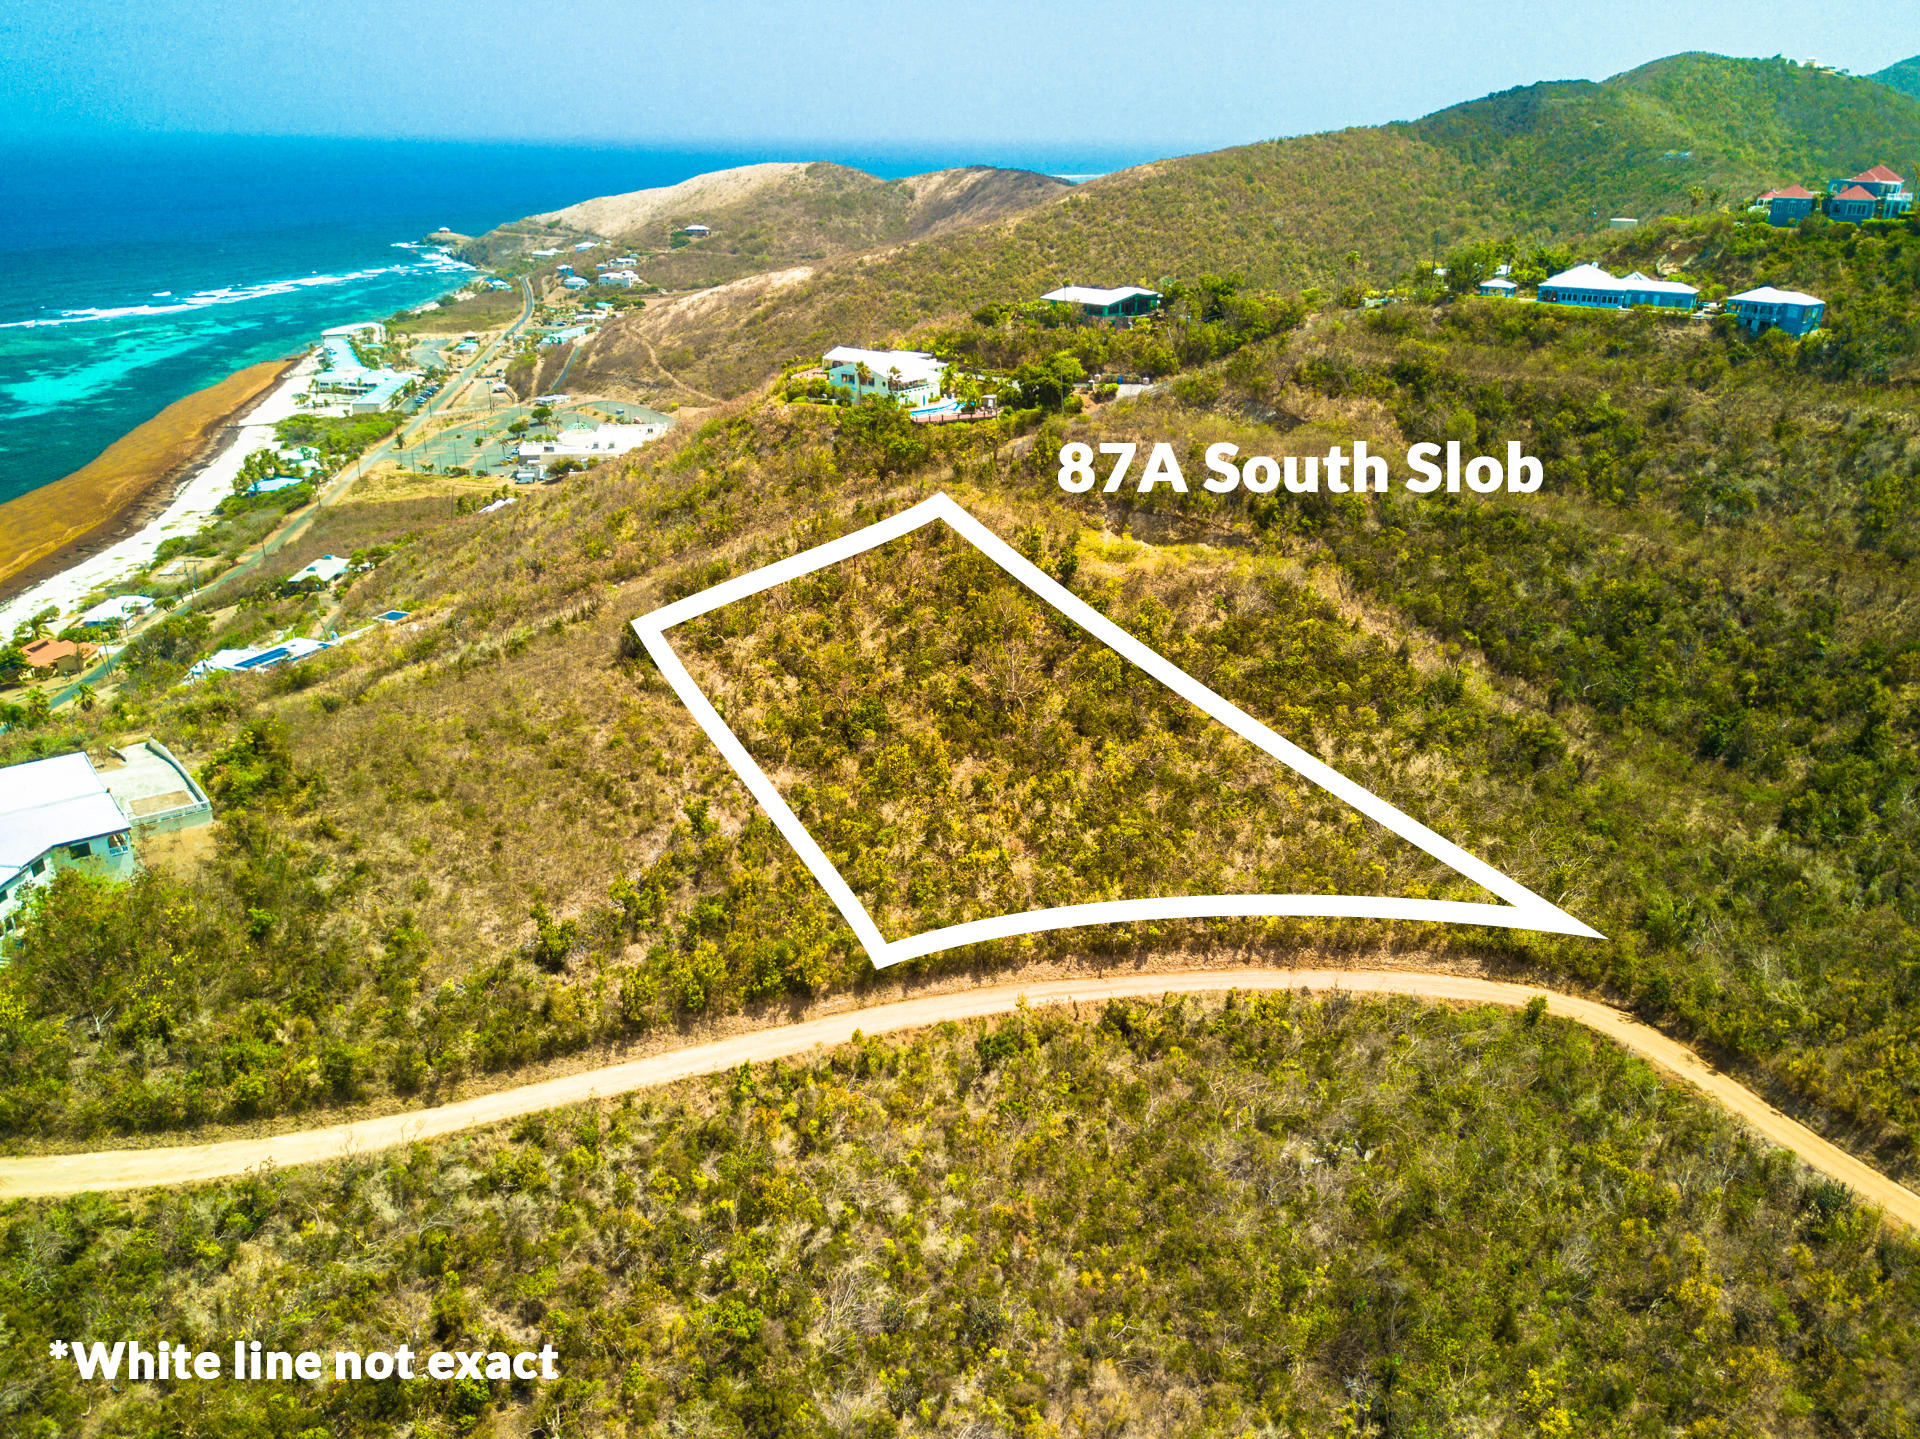 Land for Sale at 87A South Slob EB 87A South Slob EB St Croix, Virgin Islands 00820 United States Virgin Islands